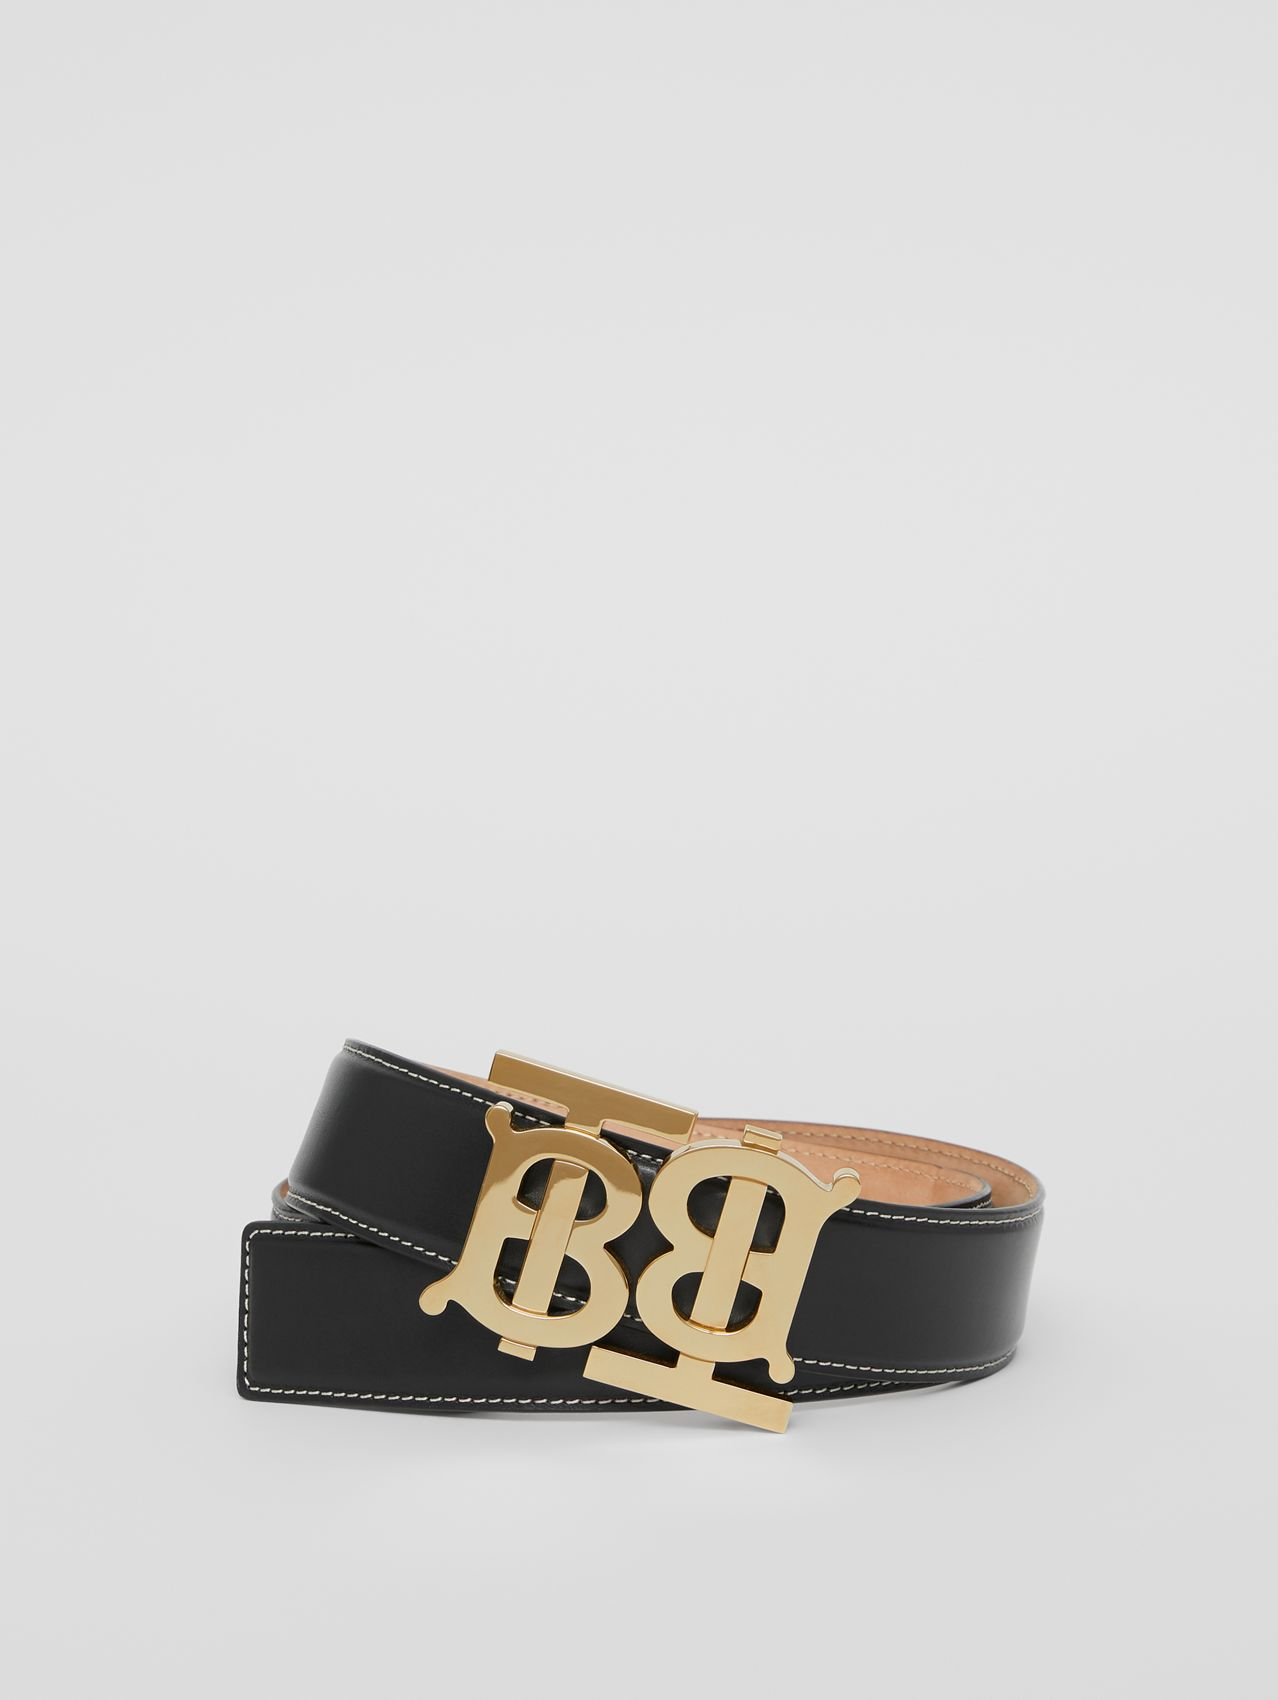 Double Monogram Motif Leather Belt in Black